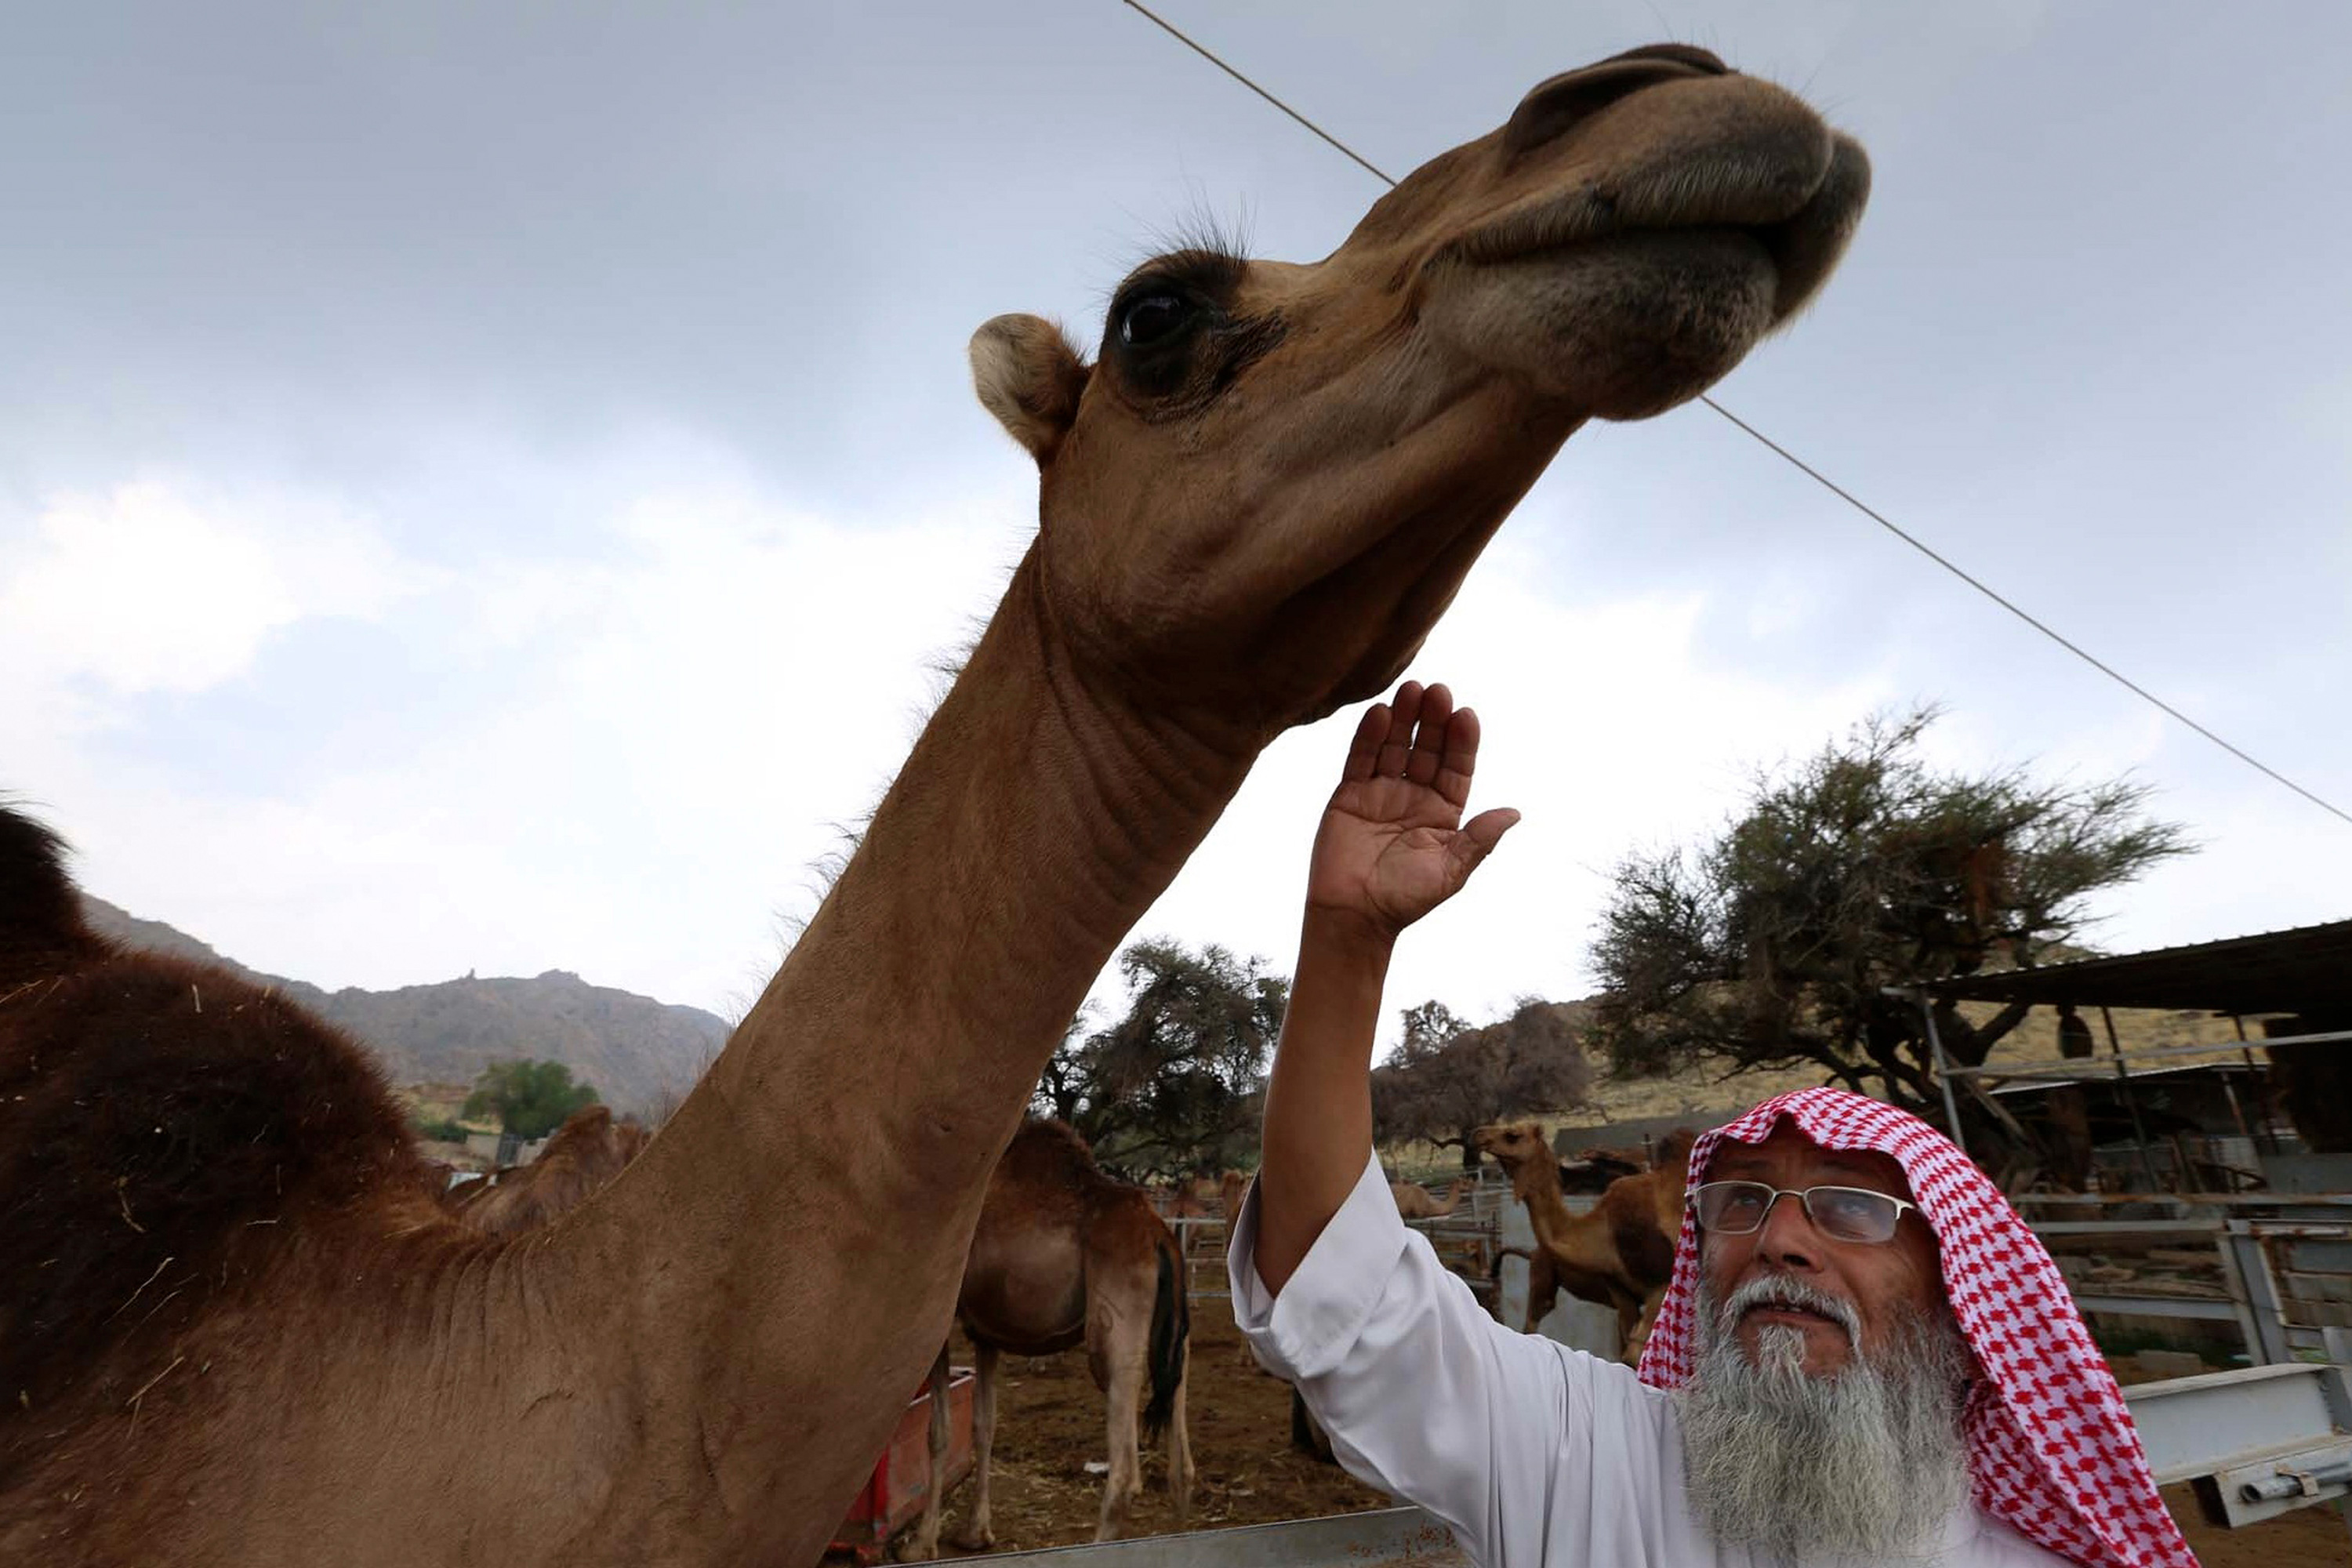 The man is older, with a long white beard, and he is reaching up to tough the head or neck of a camel that is towering over him.